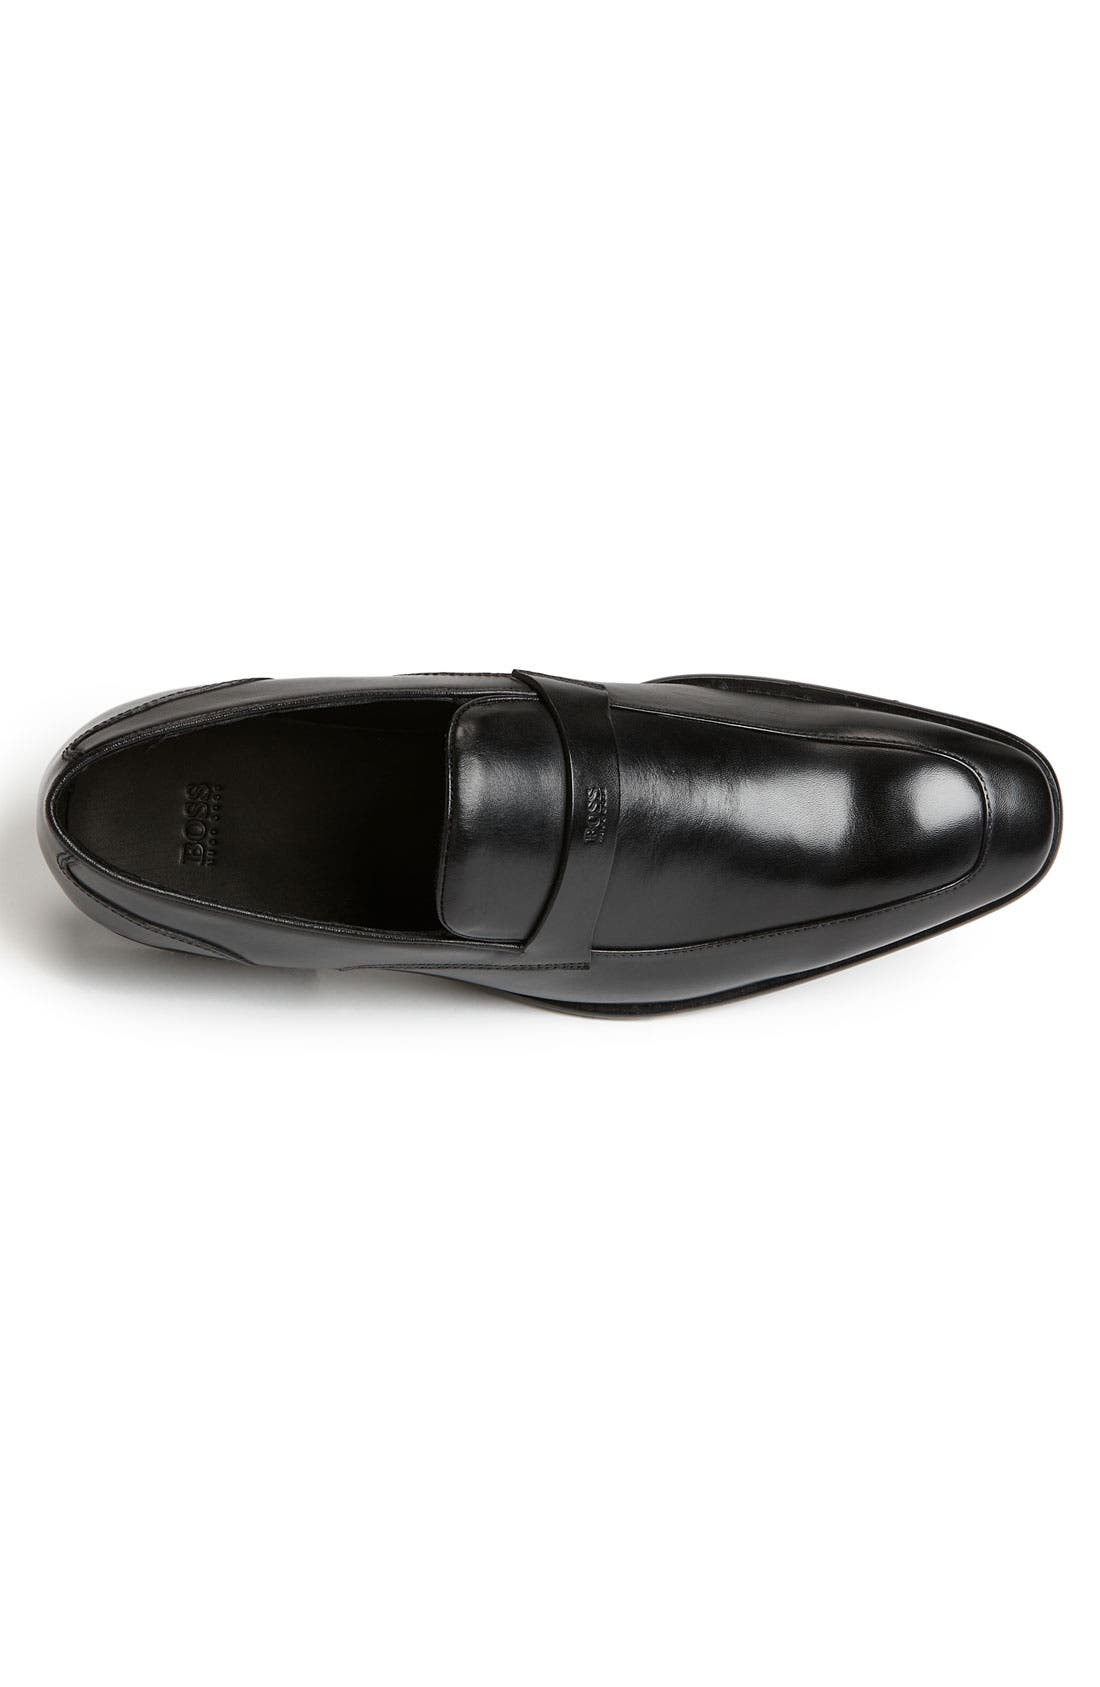 Alternate Image 3  - BOSS HUGO BOSS 'Metero' Loafer (Men)